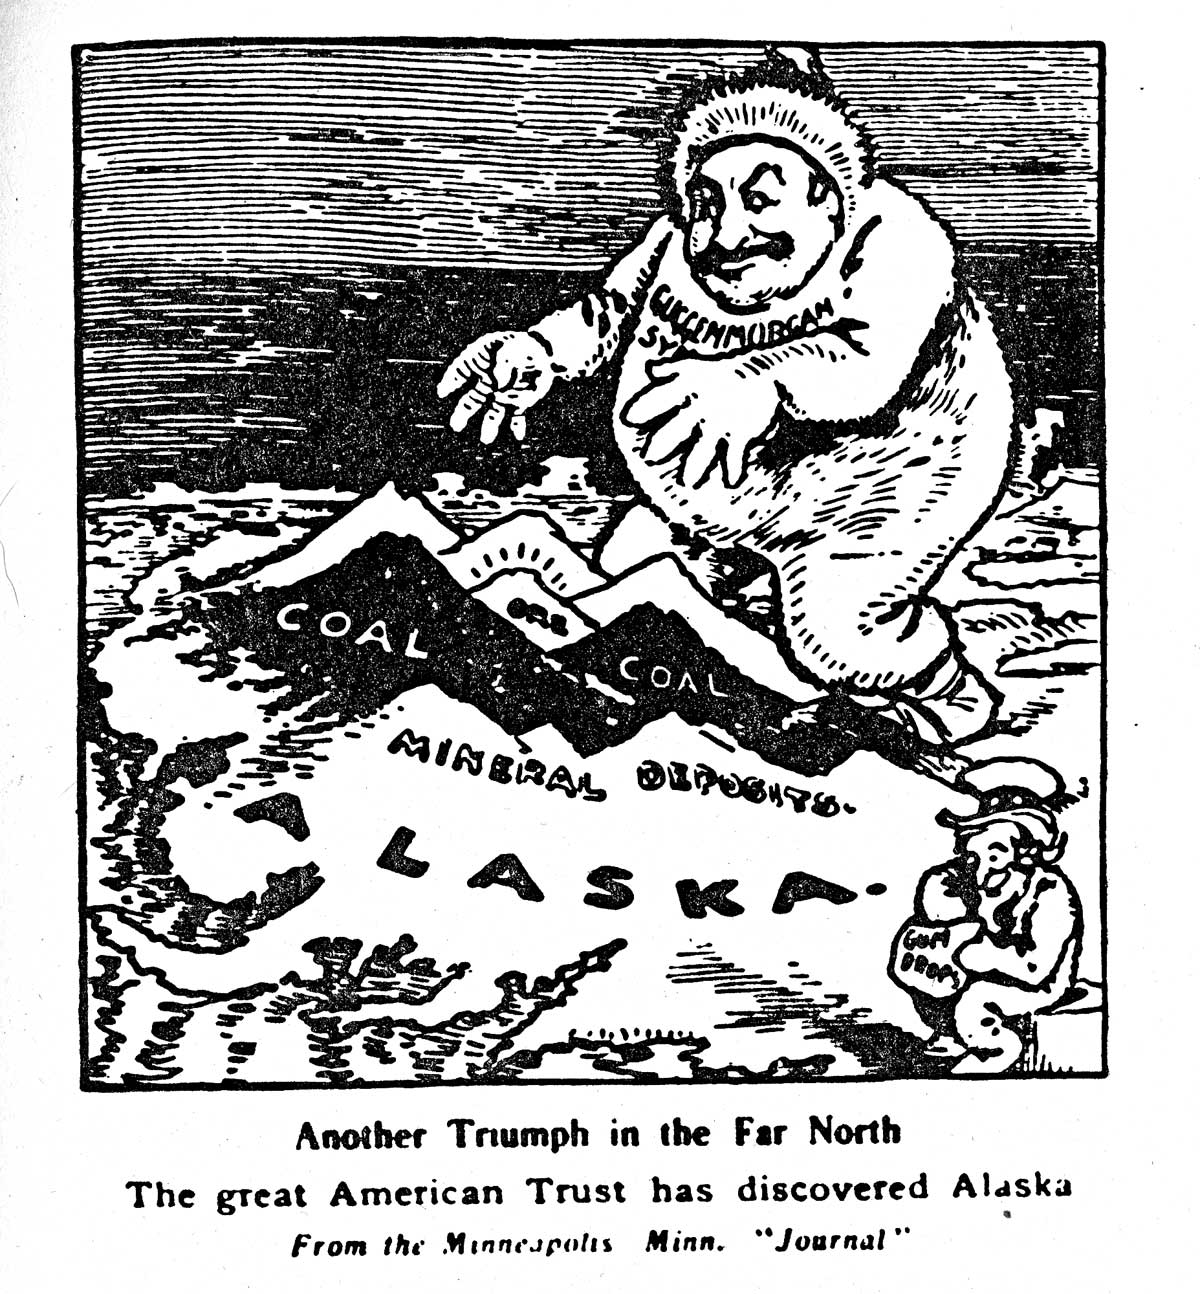 Who were the Guggenheims and what was their involvement in Alaska?